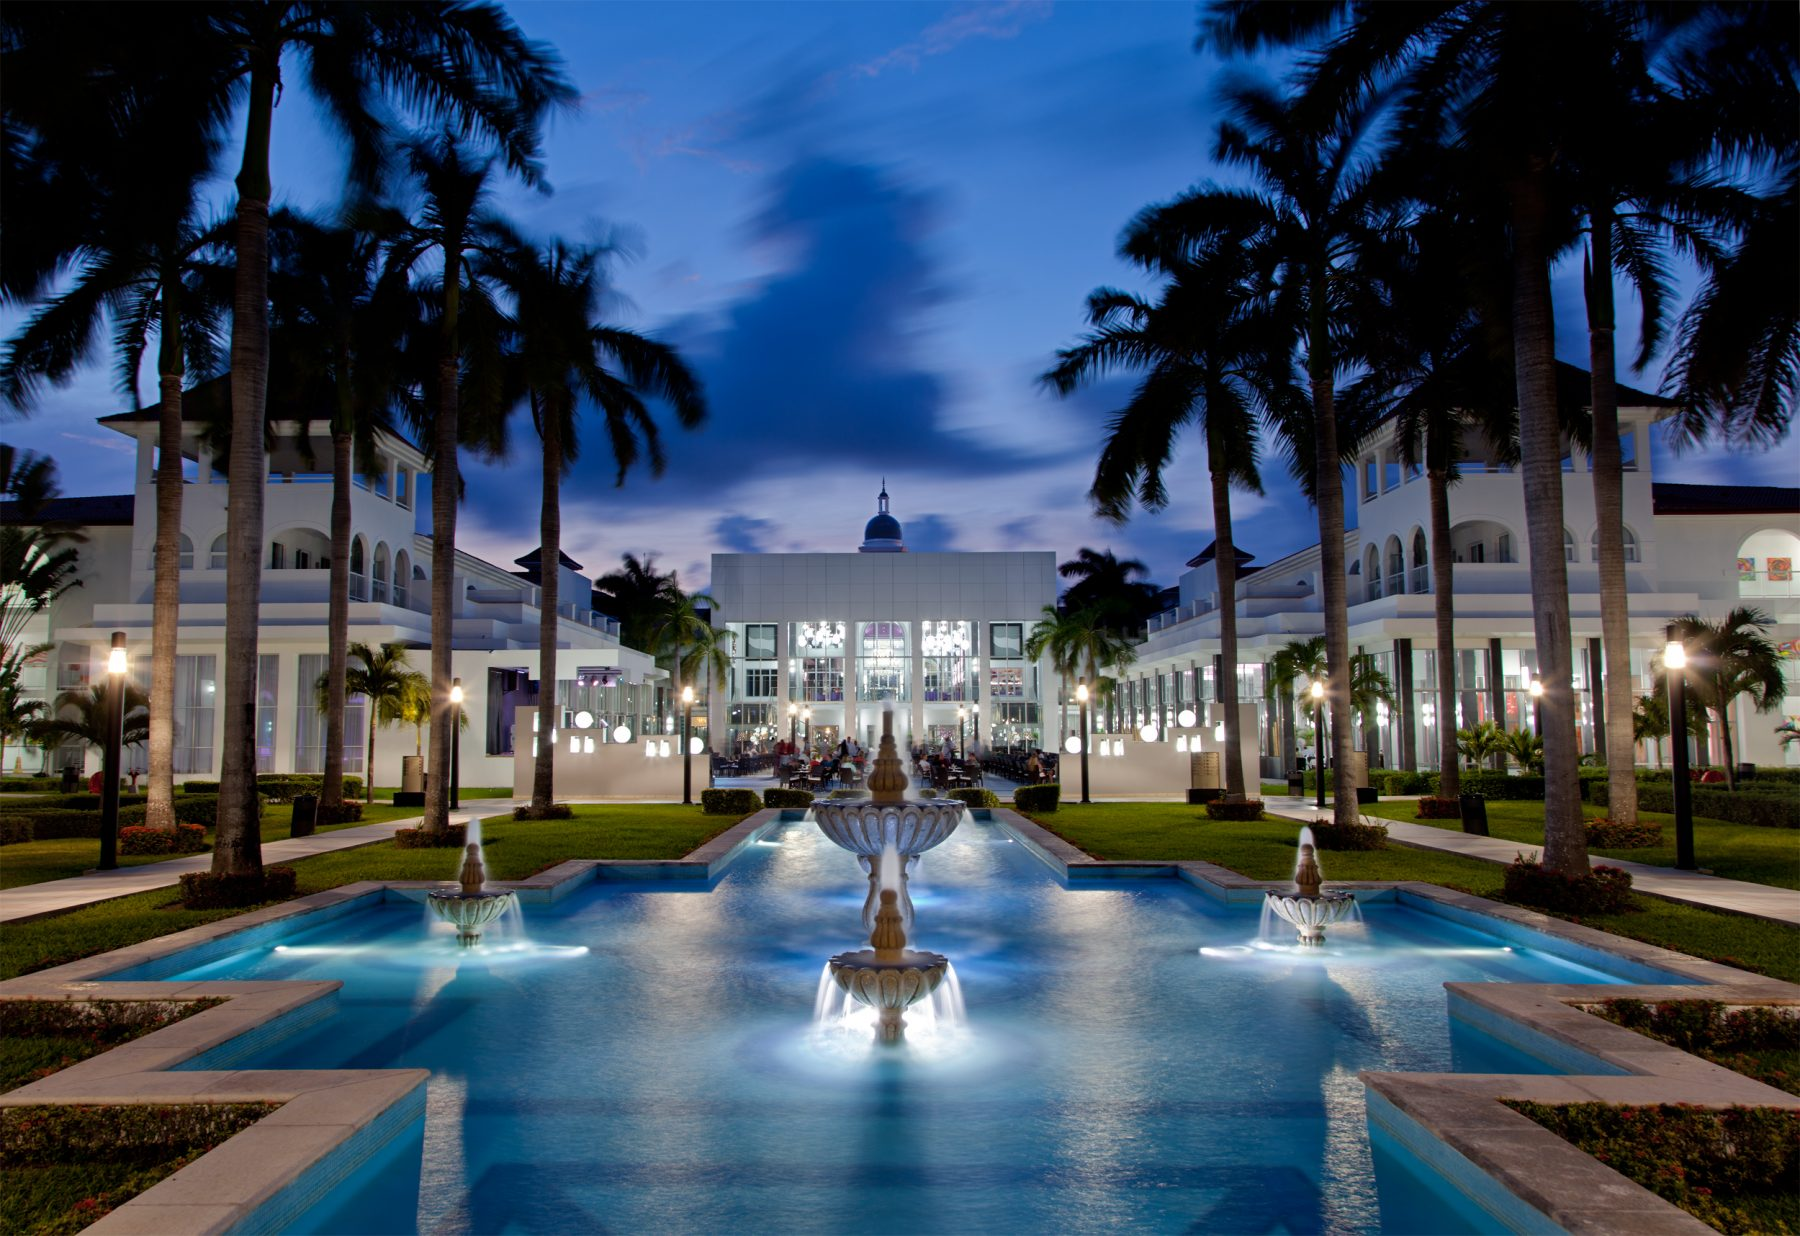 Rui Palace Mexico Review Top 5 Things To Know Before Booking